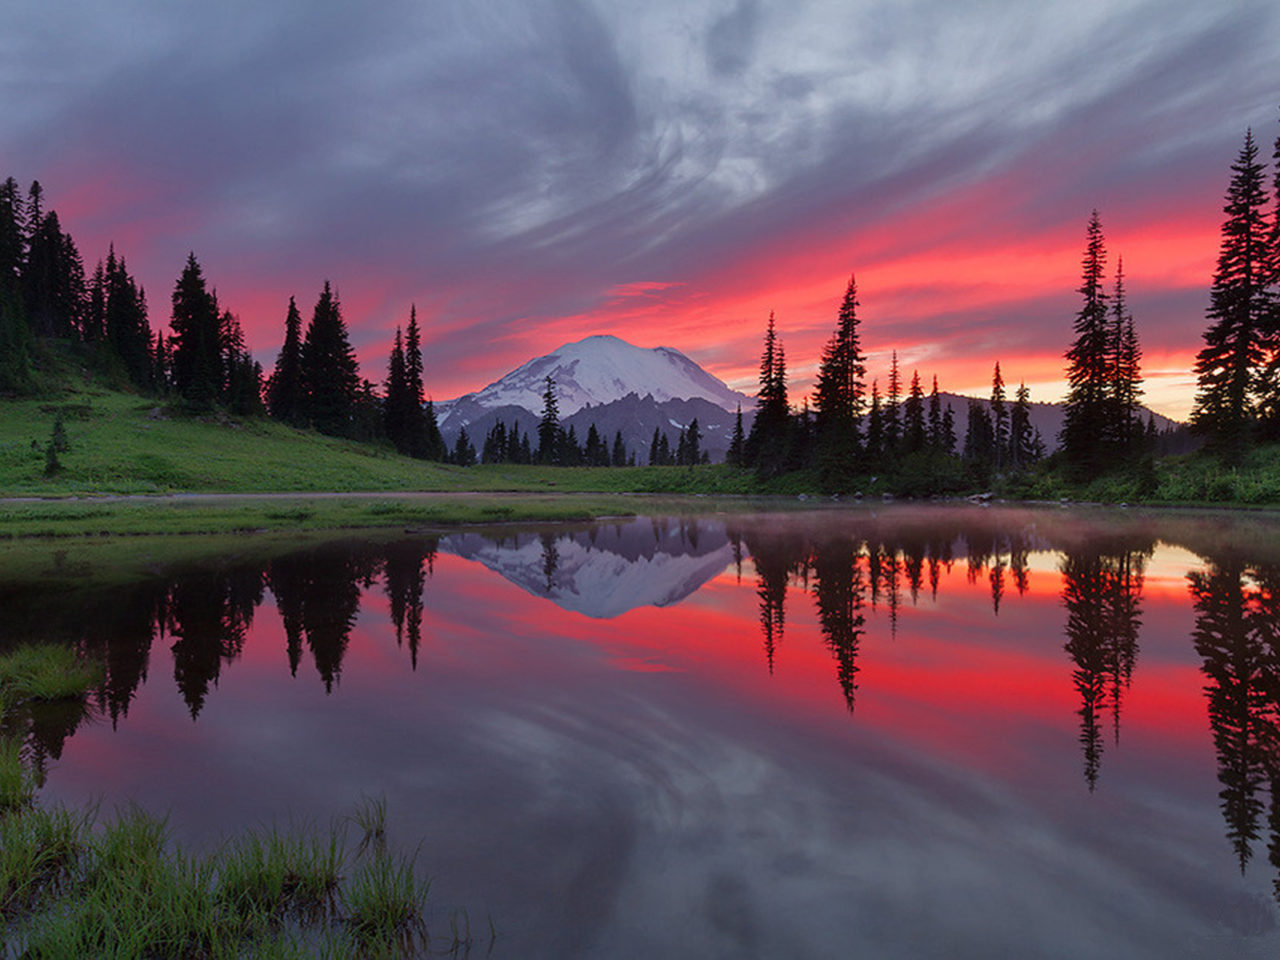 Hd Wallpaper Ipad 3 Pink Sunset Reflection Tipsoo Lake Mount Rainier